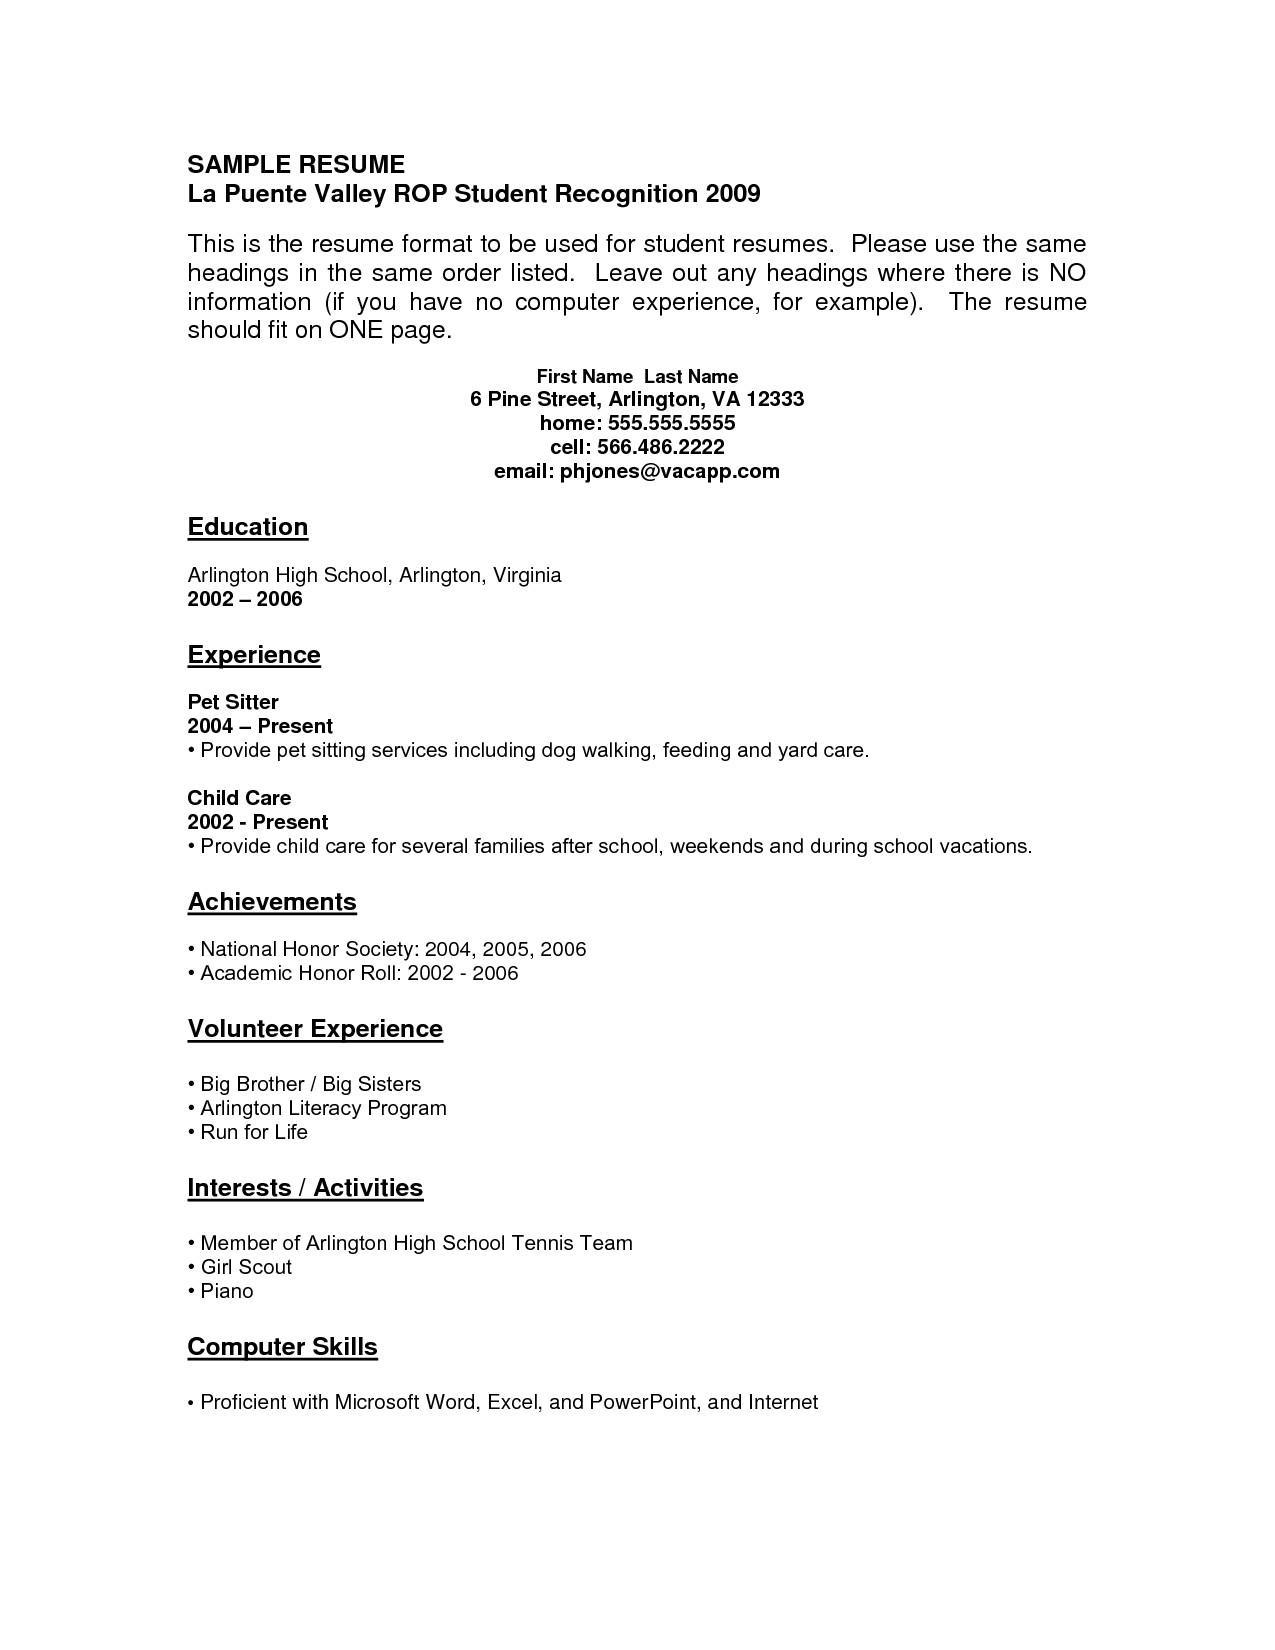 free resume templates for high school students with no